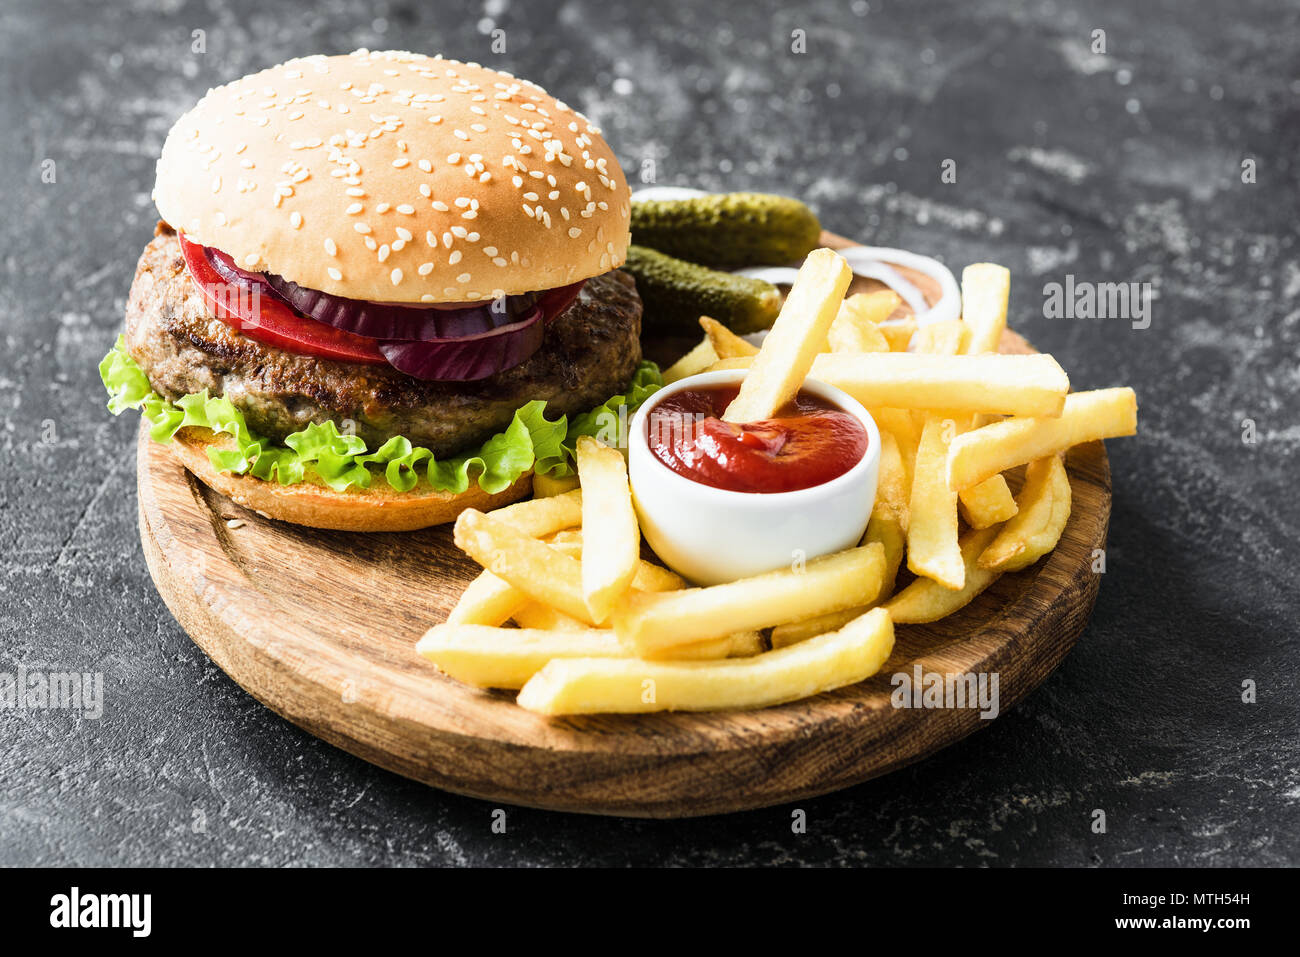 Beef burger with lettuce and tomato, potato fries and ketchup. Fast food - Stock Image